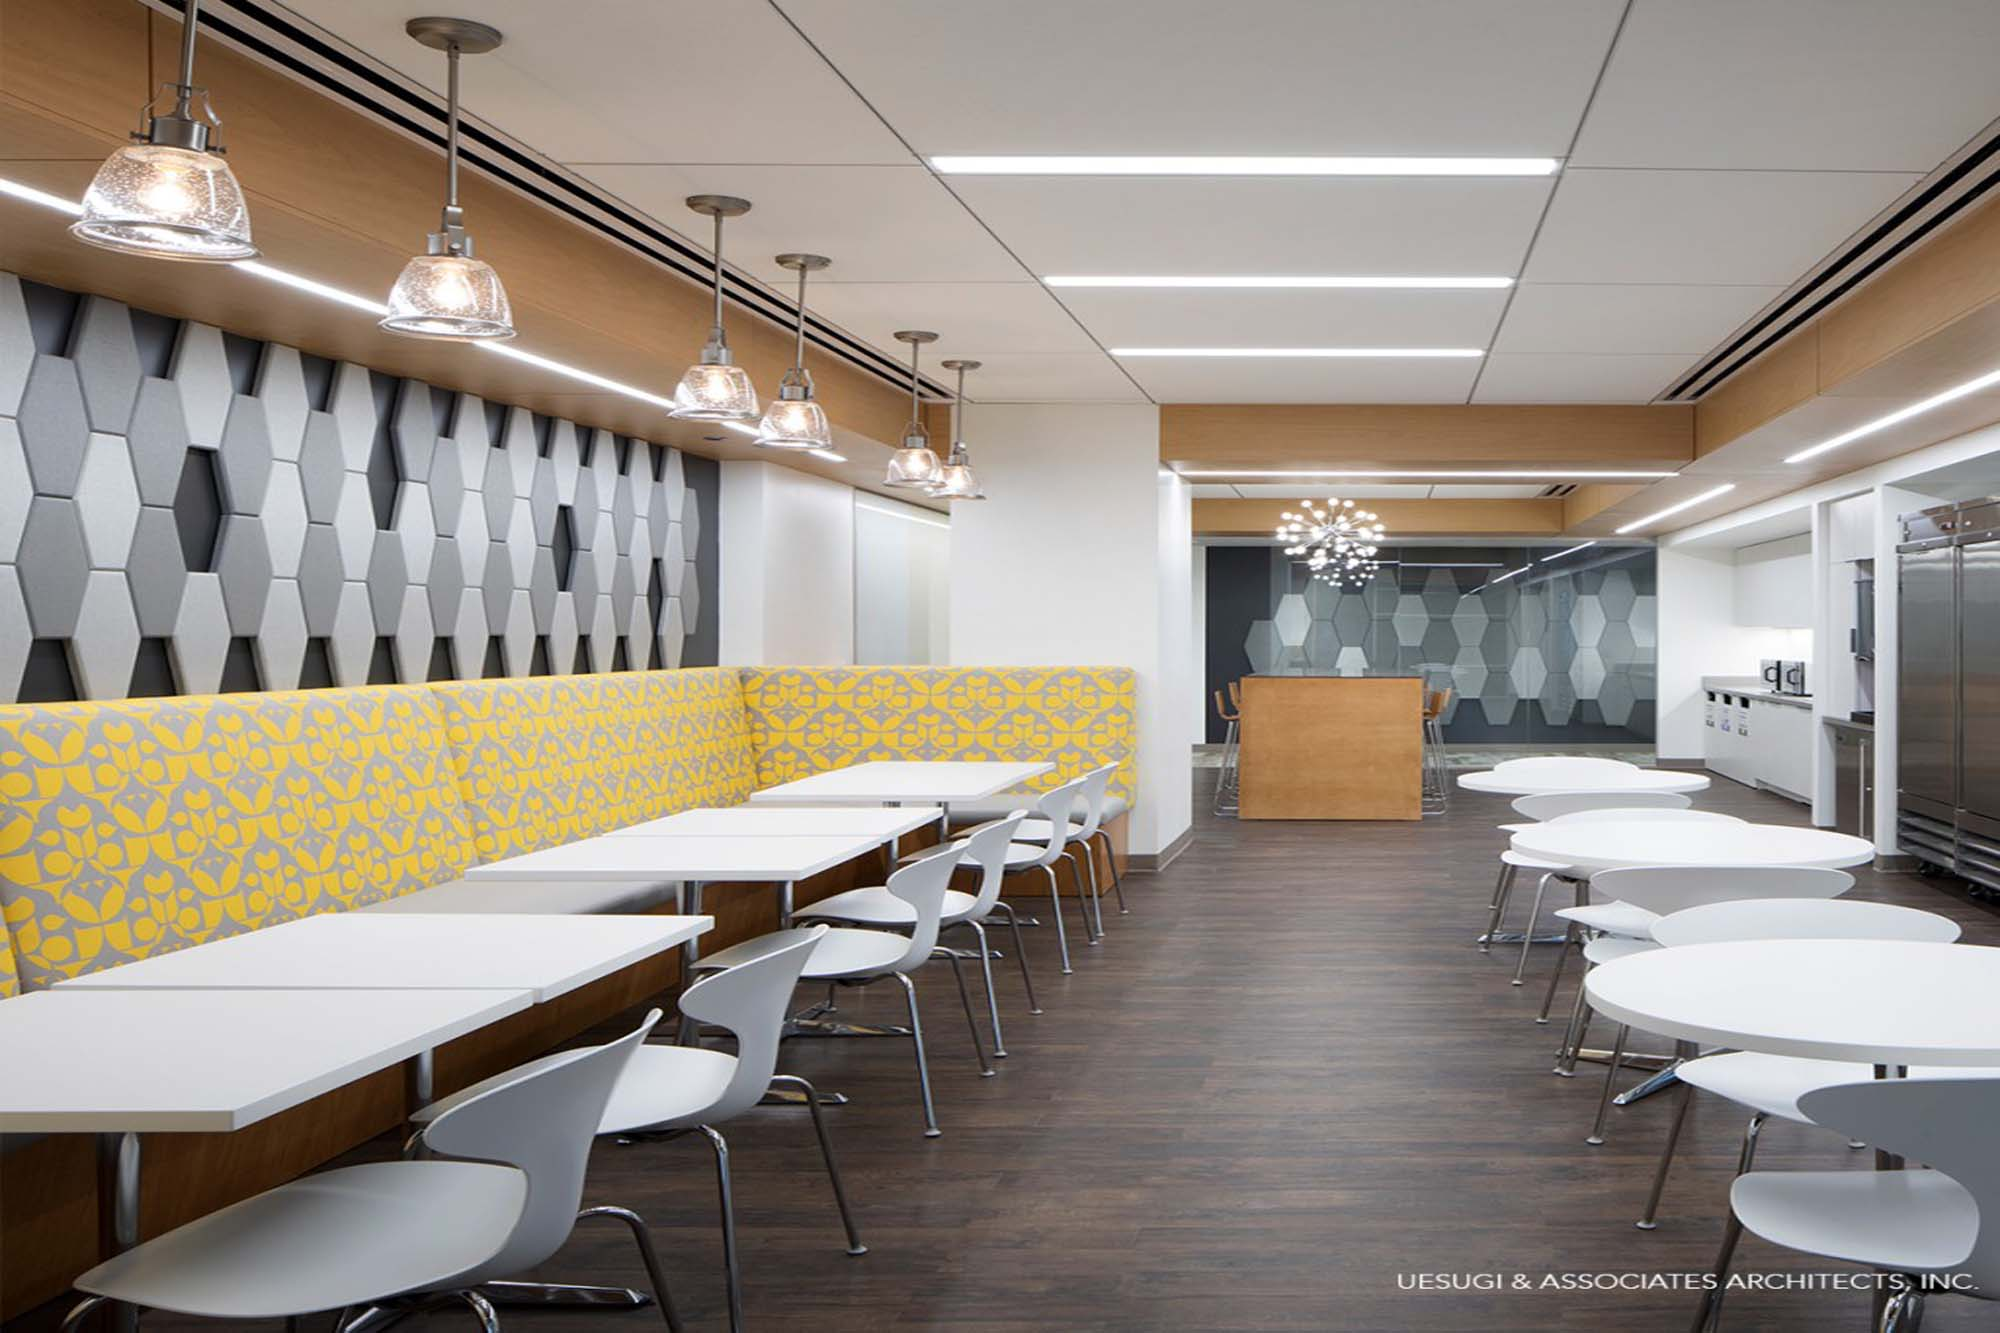 Today's open work environments demand flexible noise-reduction solutions.